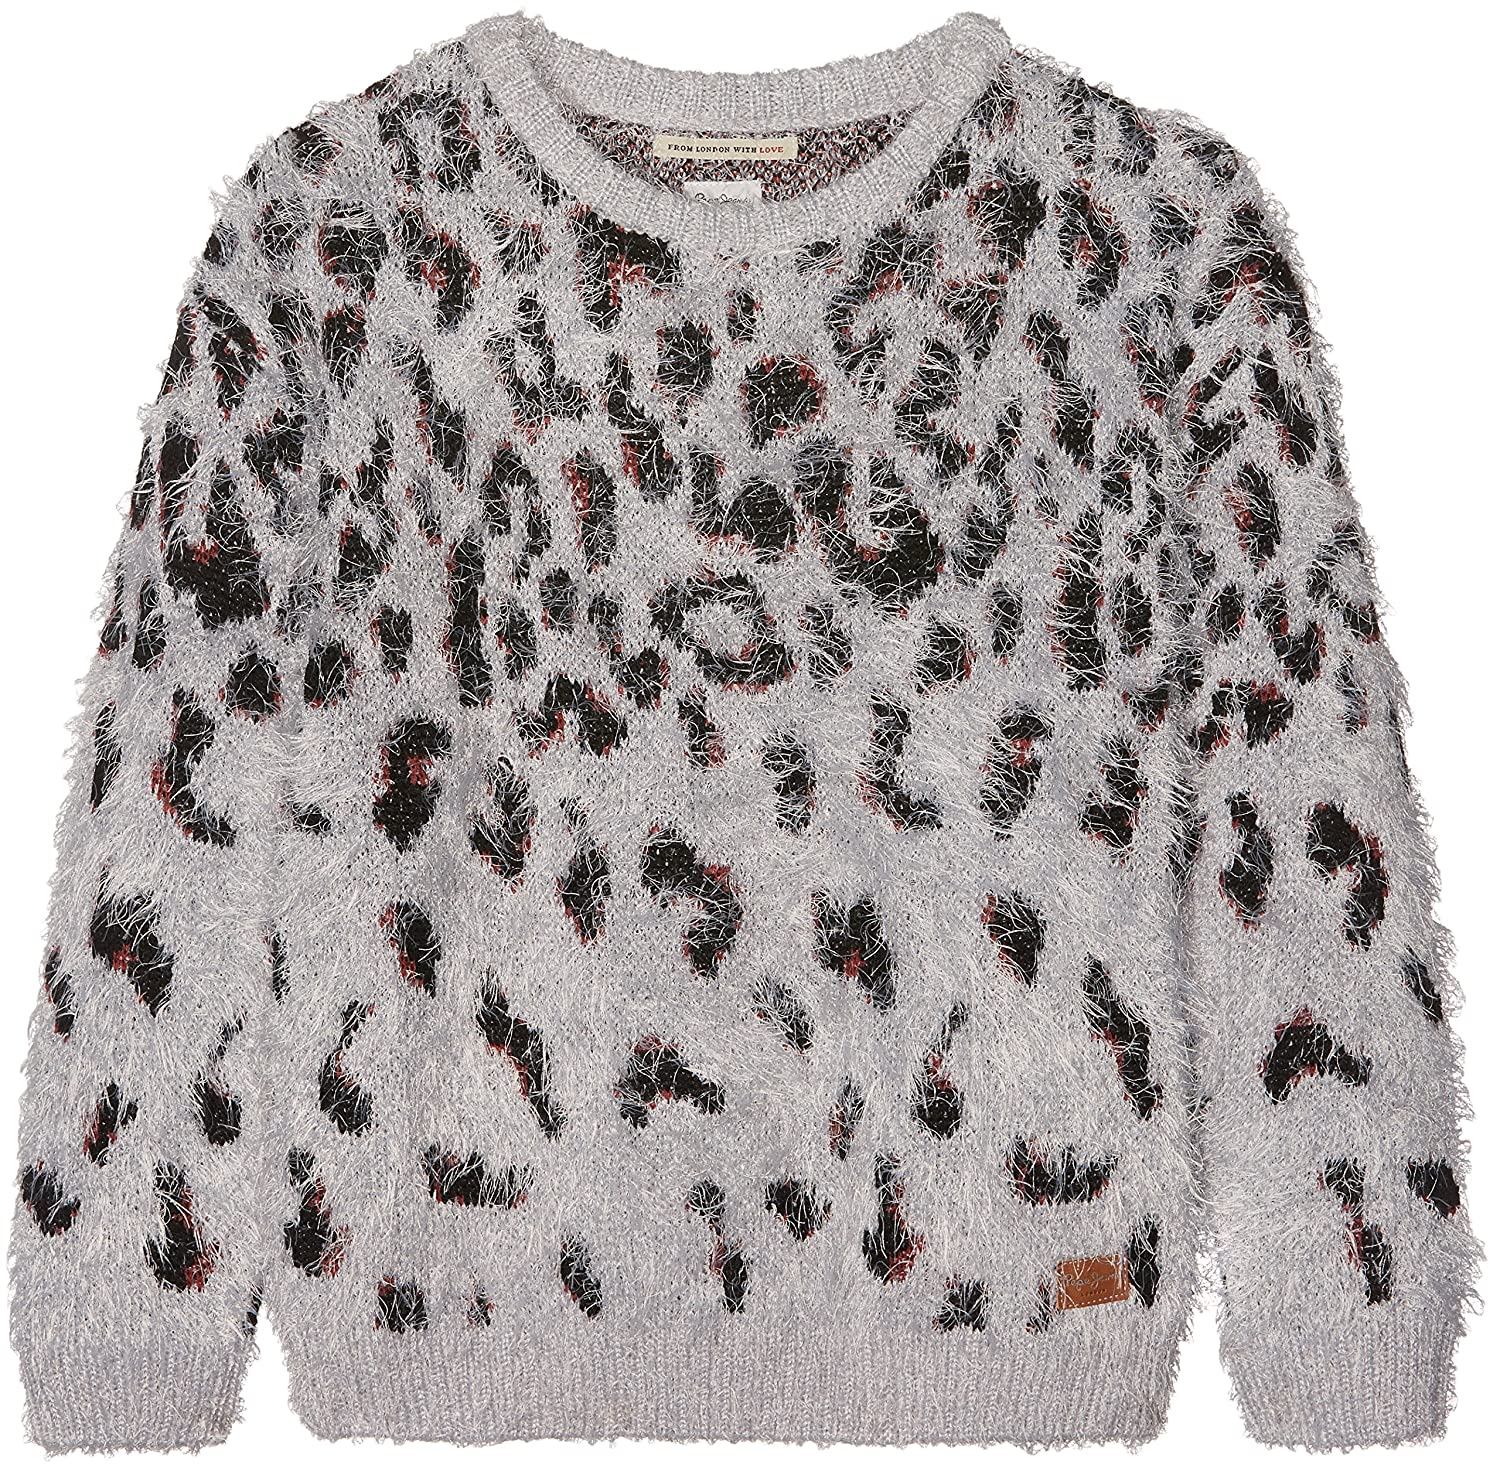 Pepe Jeans Girl's Jumper Grey Marl 14 Years PG700638